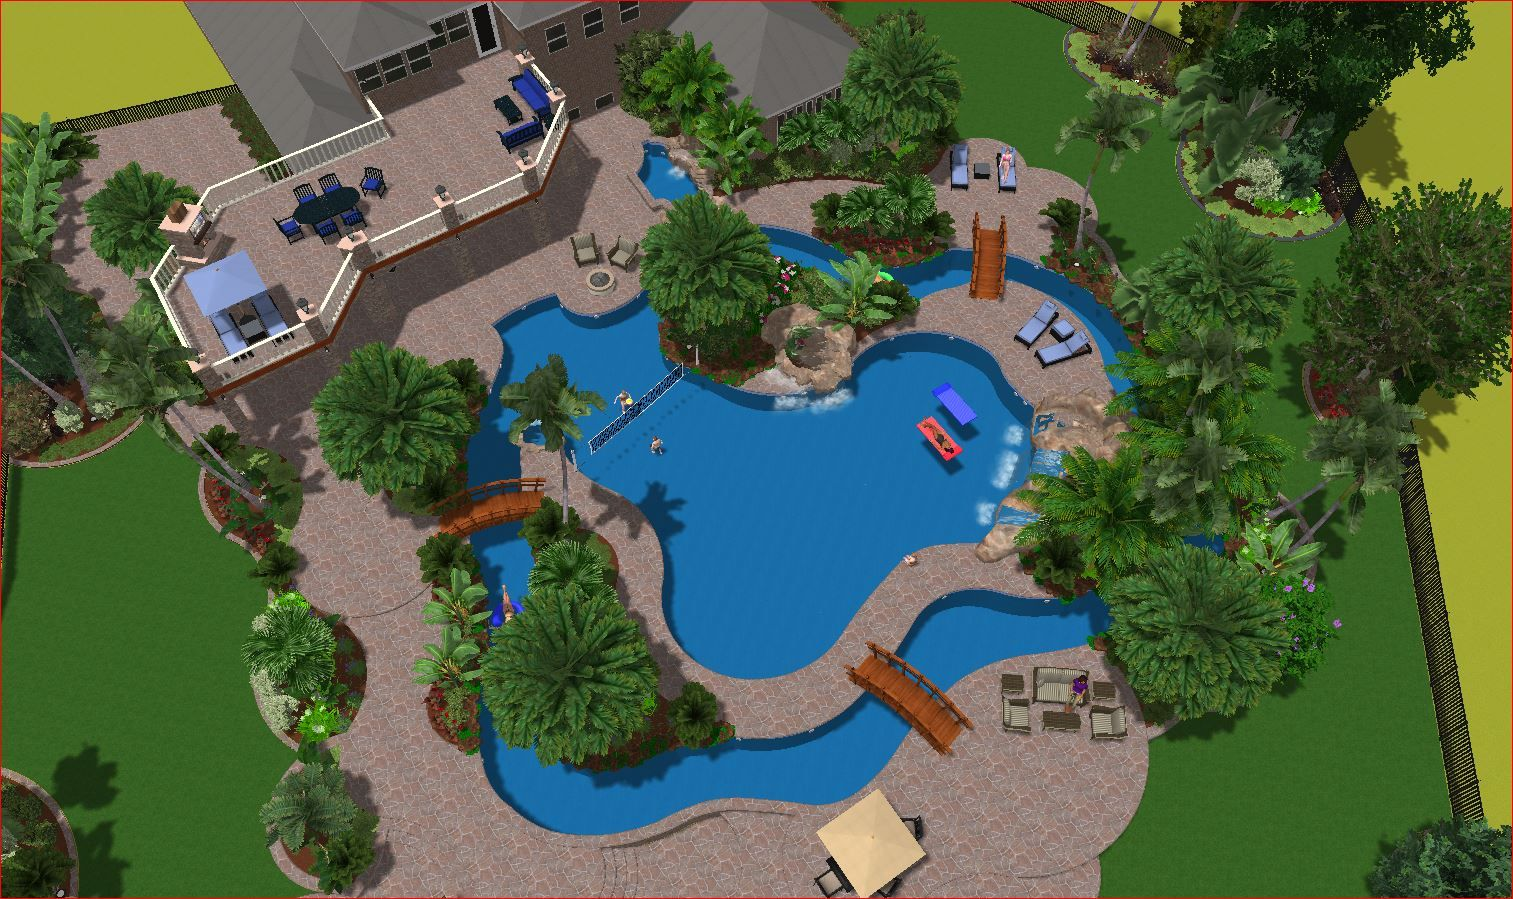 lazy river pool swimming pool designs swimming pools beautiful pools backyard pools pool ideas yard ideas rivers dream pools. beautiful ideas. Home Design Ideas